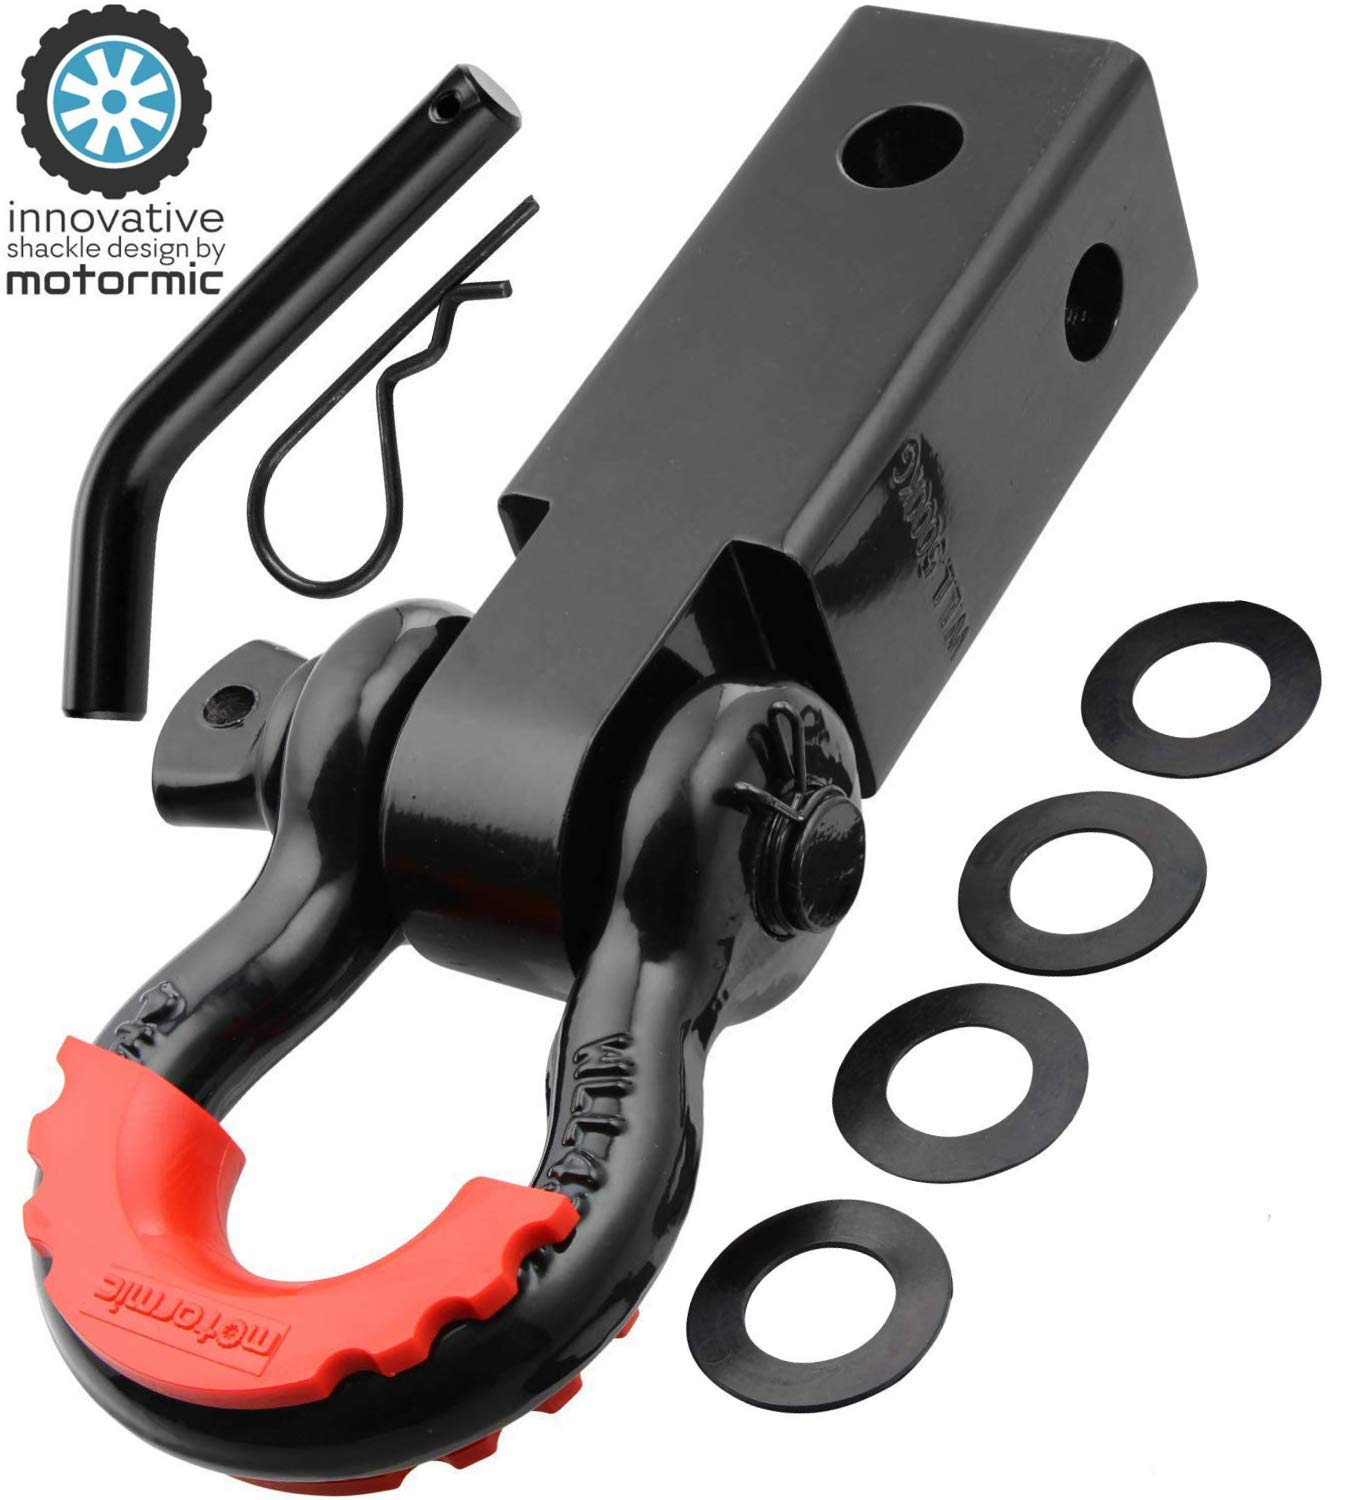 """motormic Unique Shackle Hitch Receiver 2"""" (35,000 lbs Max Capacity) with 3/4"""" D Ring and 7/8"""" Screw Pin Safety Ring - Includes 1 Black Bent Pin, 4 Rubber Washers and 1 Red Isolator"""